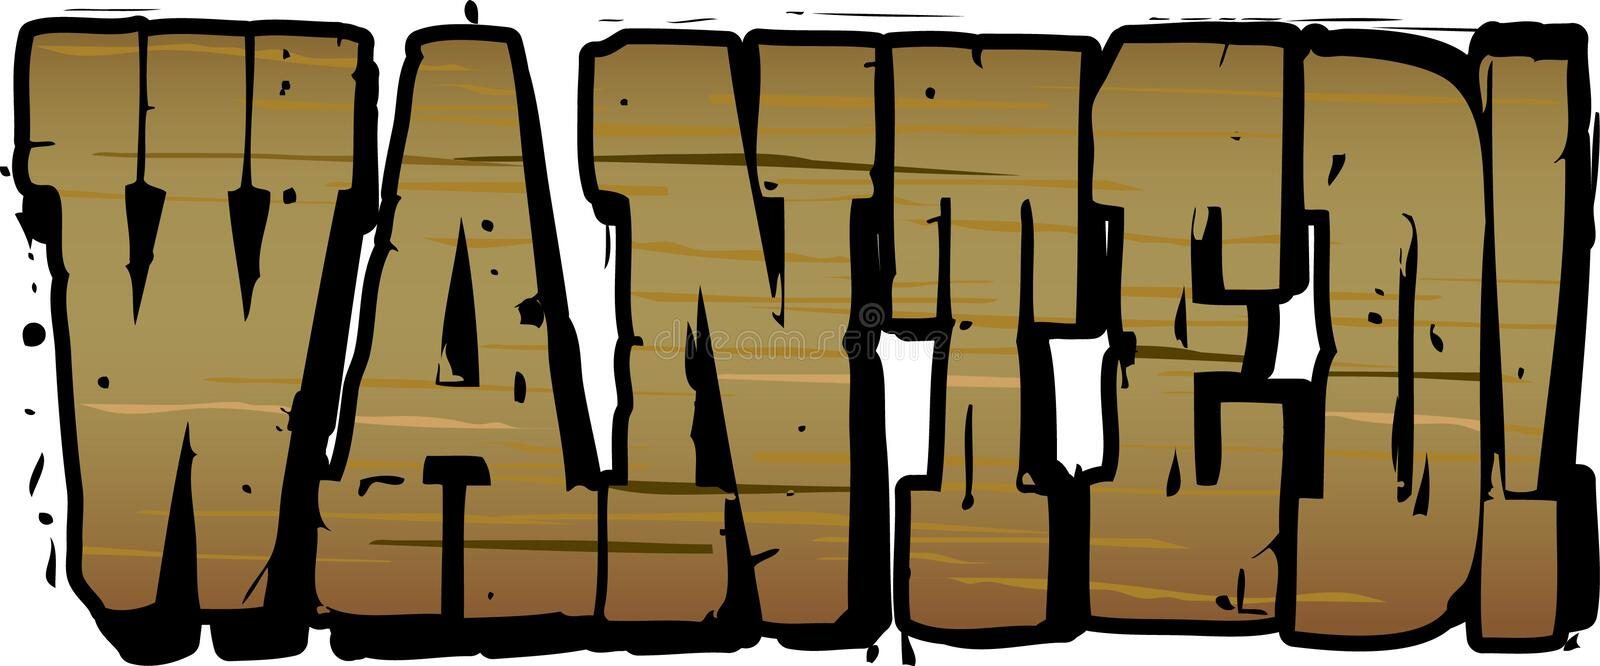 Download Wanted Wooden Lettering stock vector. Image of outlaw - 14447198